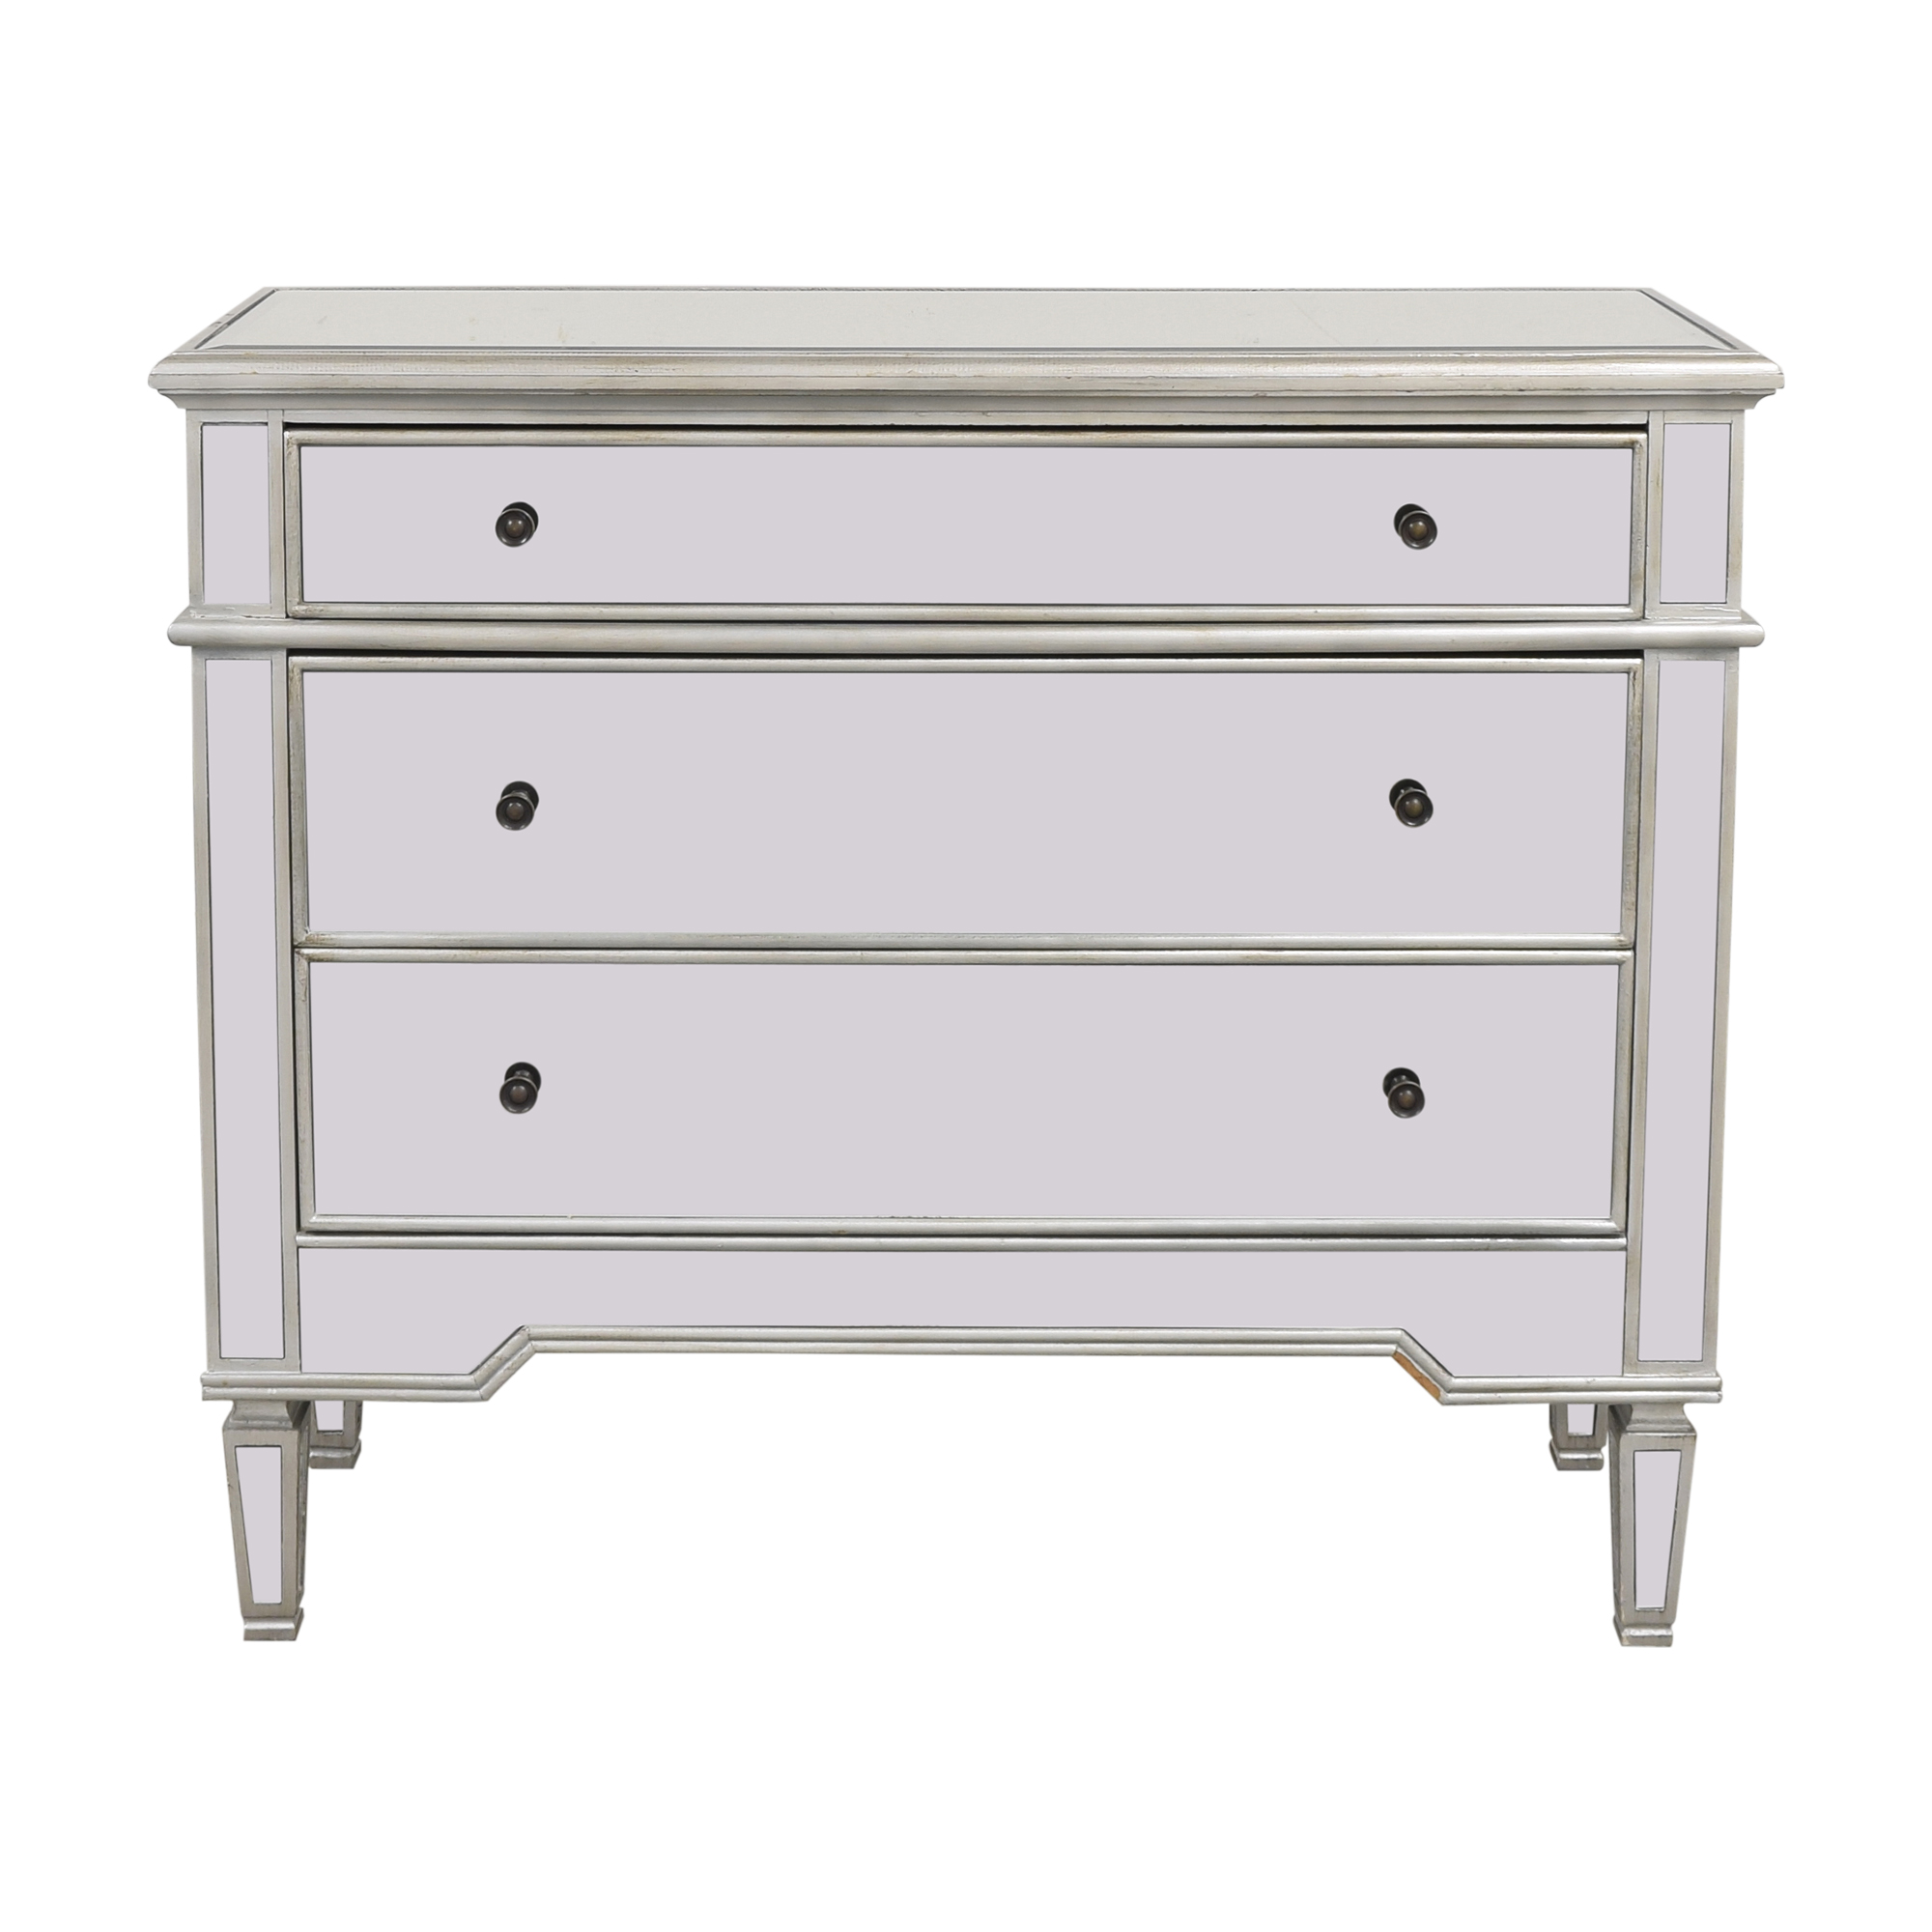 Josephine Wide 3-Drawer Mirrored Accent Chest sale